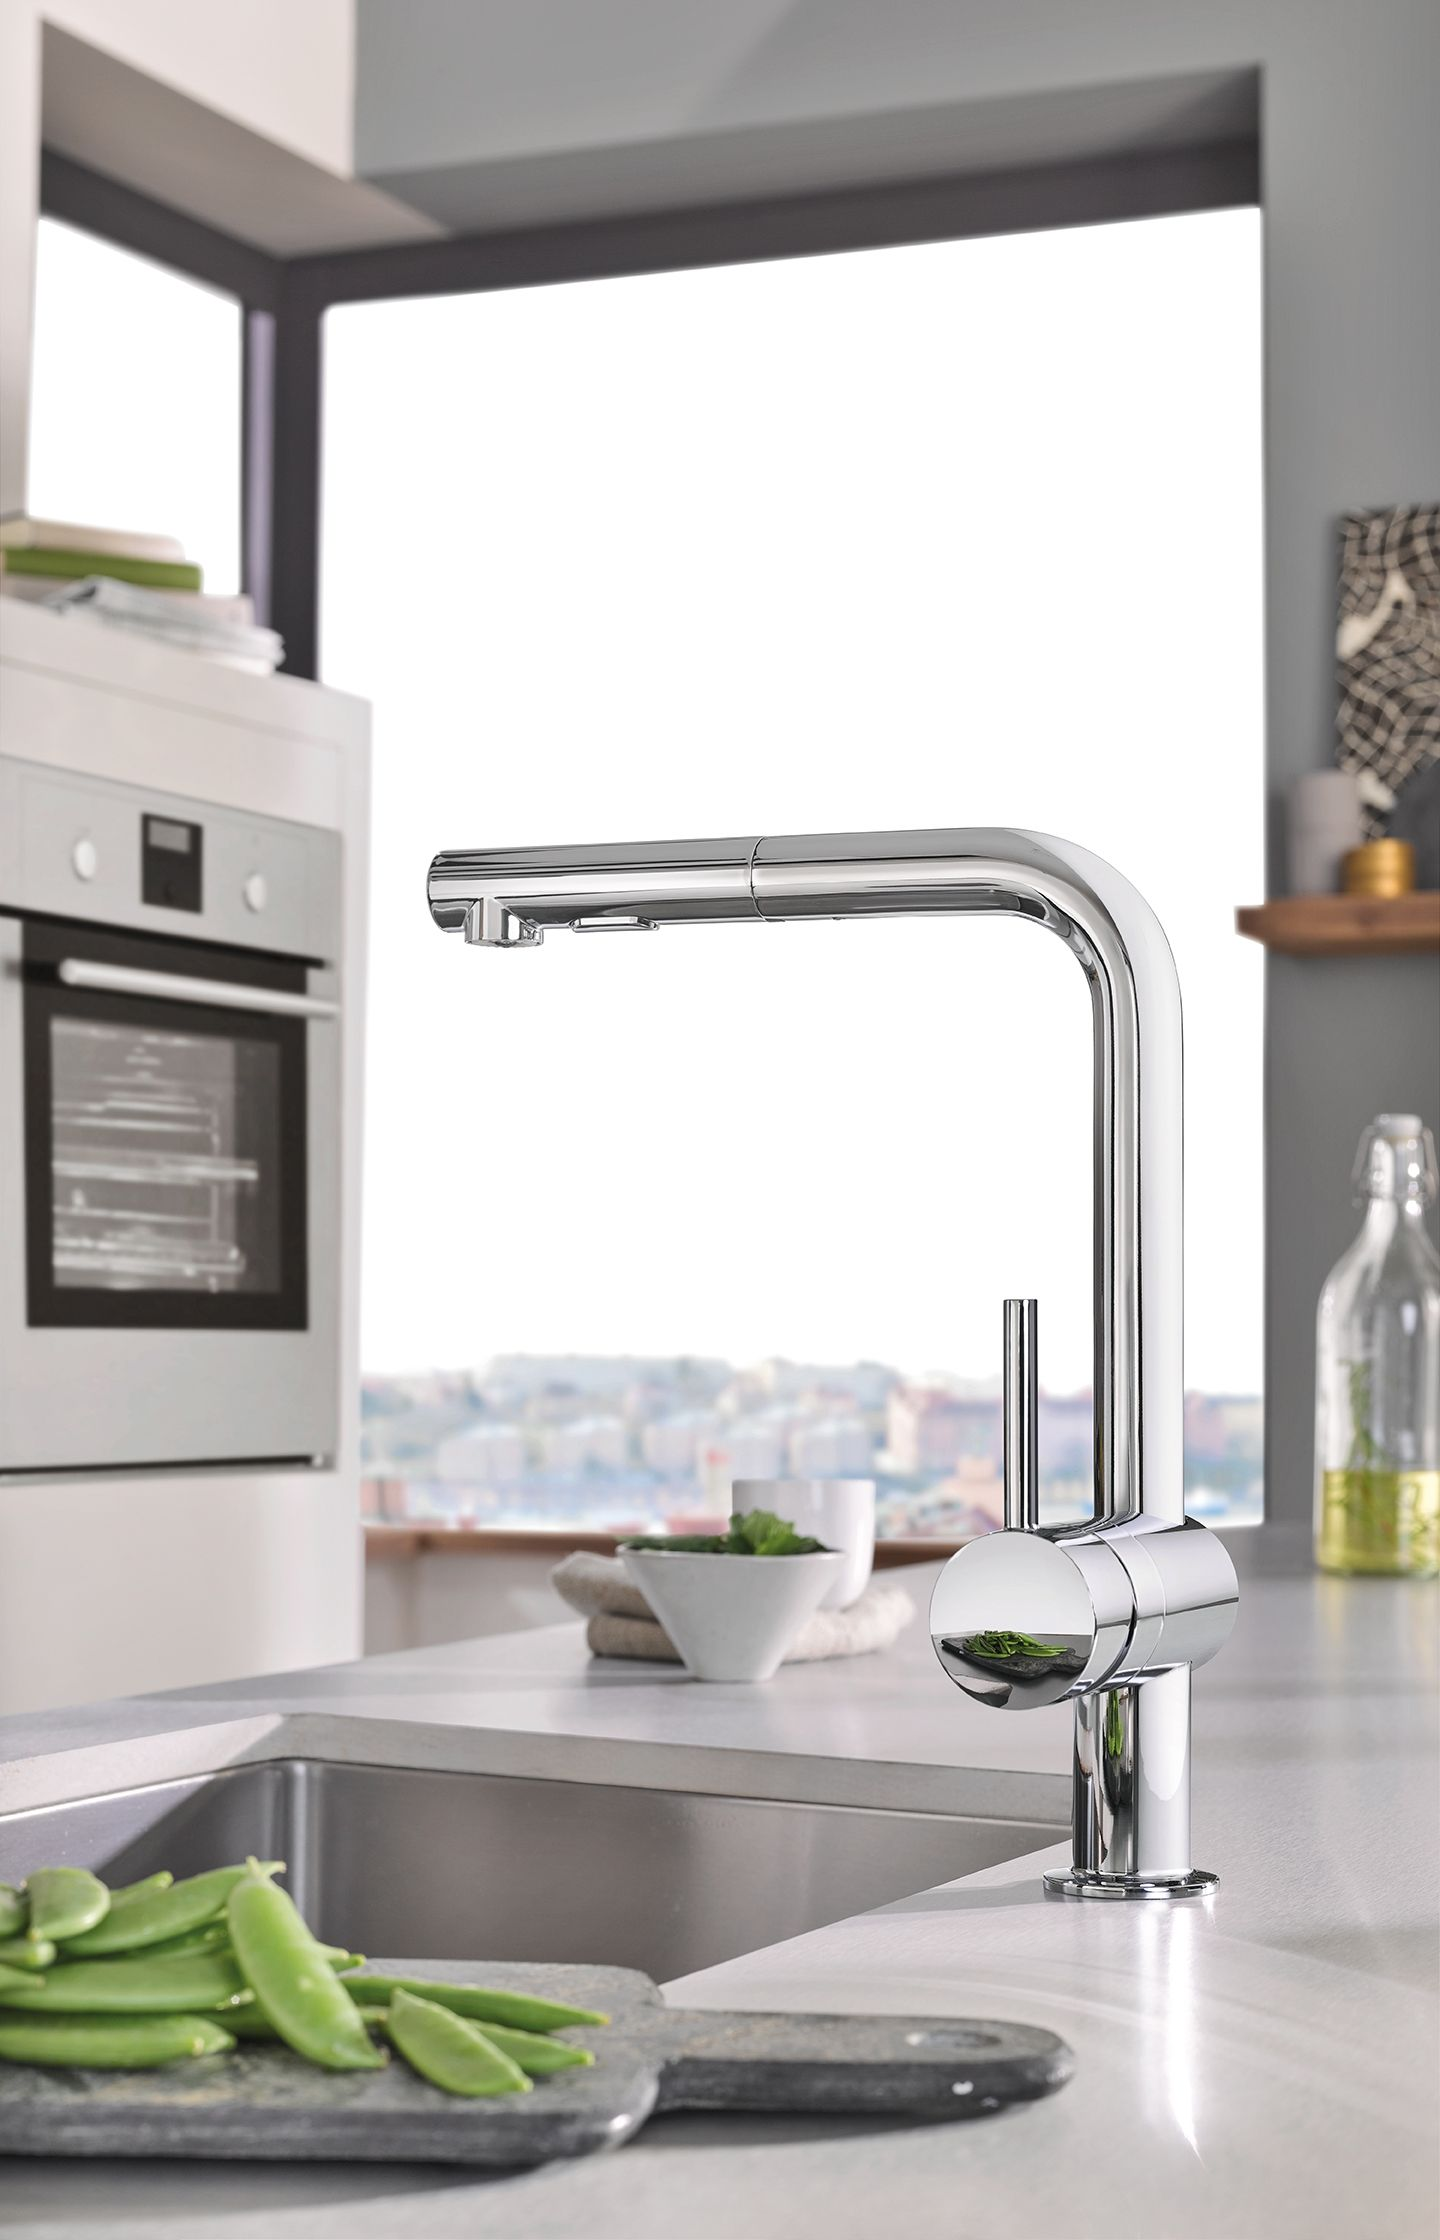 The grohe minta faucet collection features three distinct shapes in